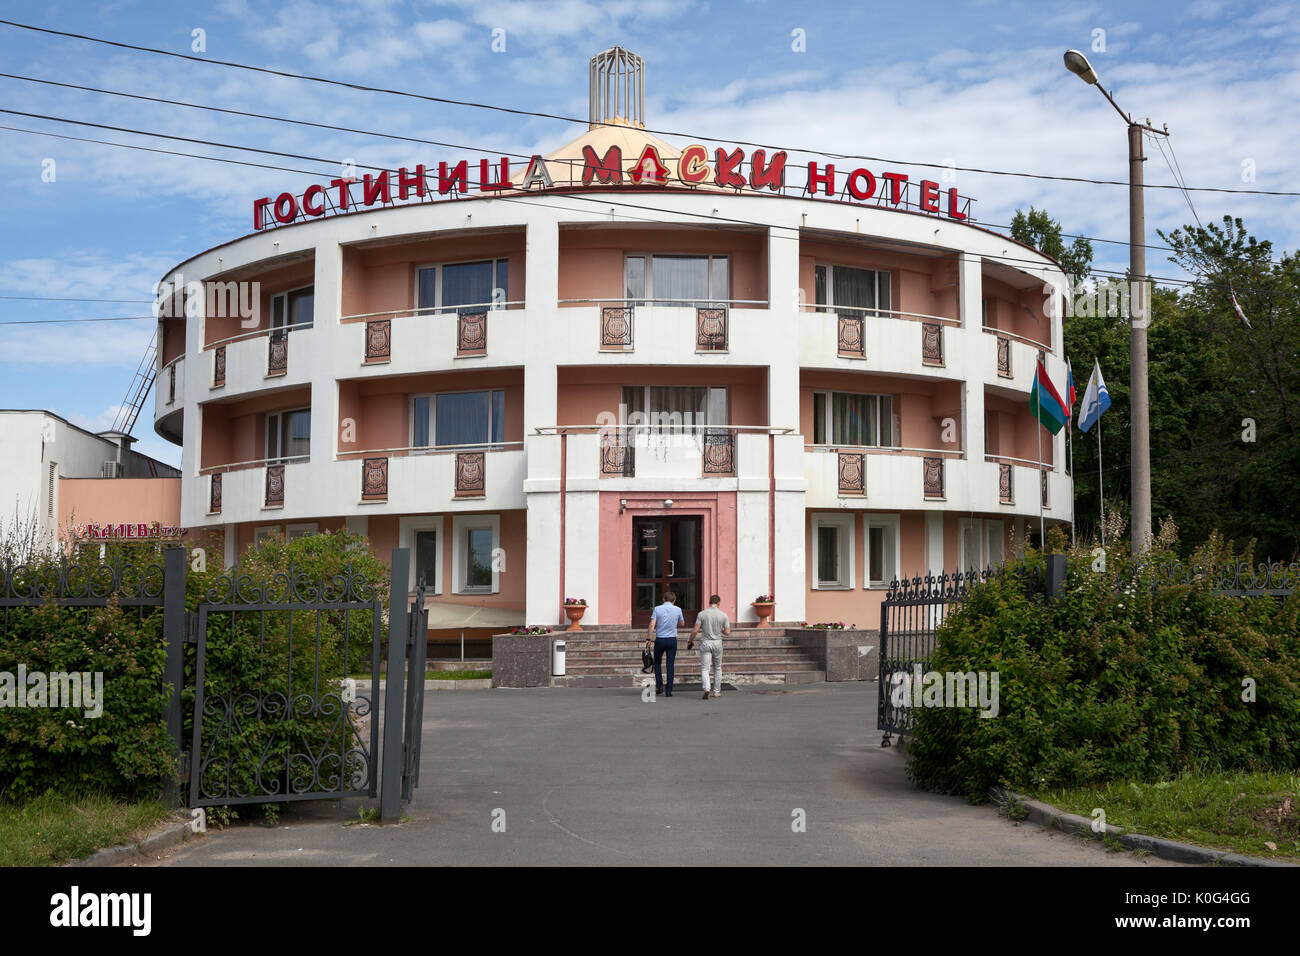 Hotels of Petrozavodsk in Karelia: a list 13